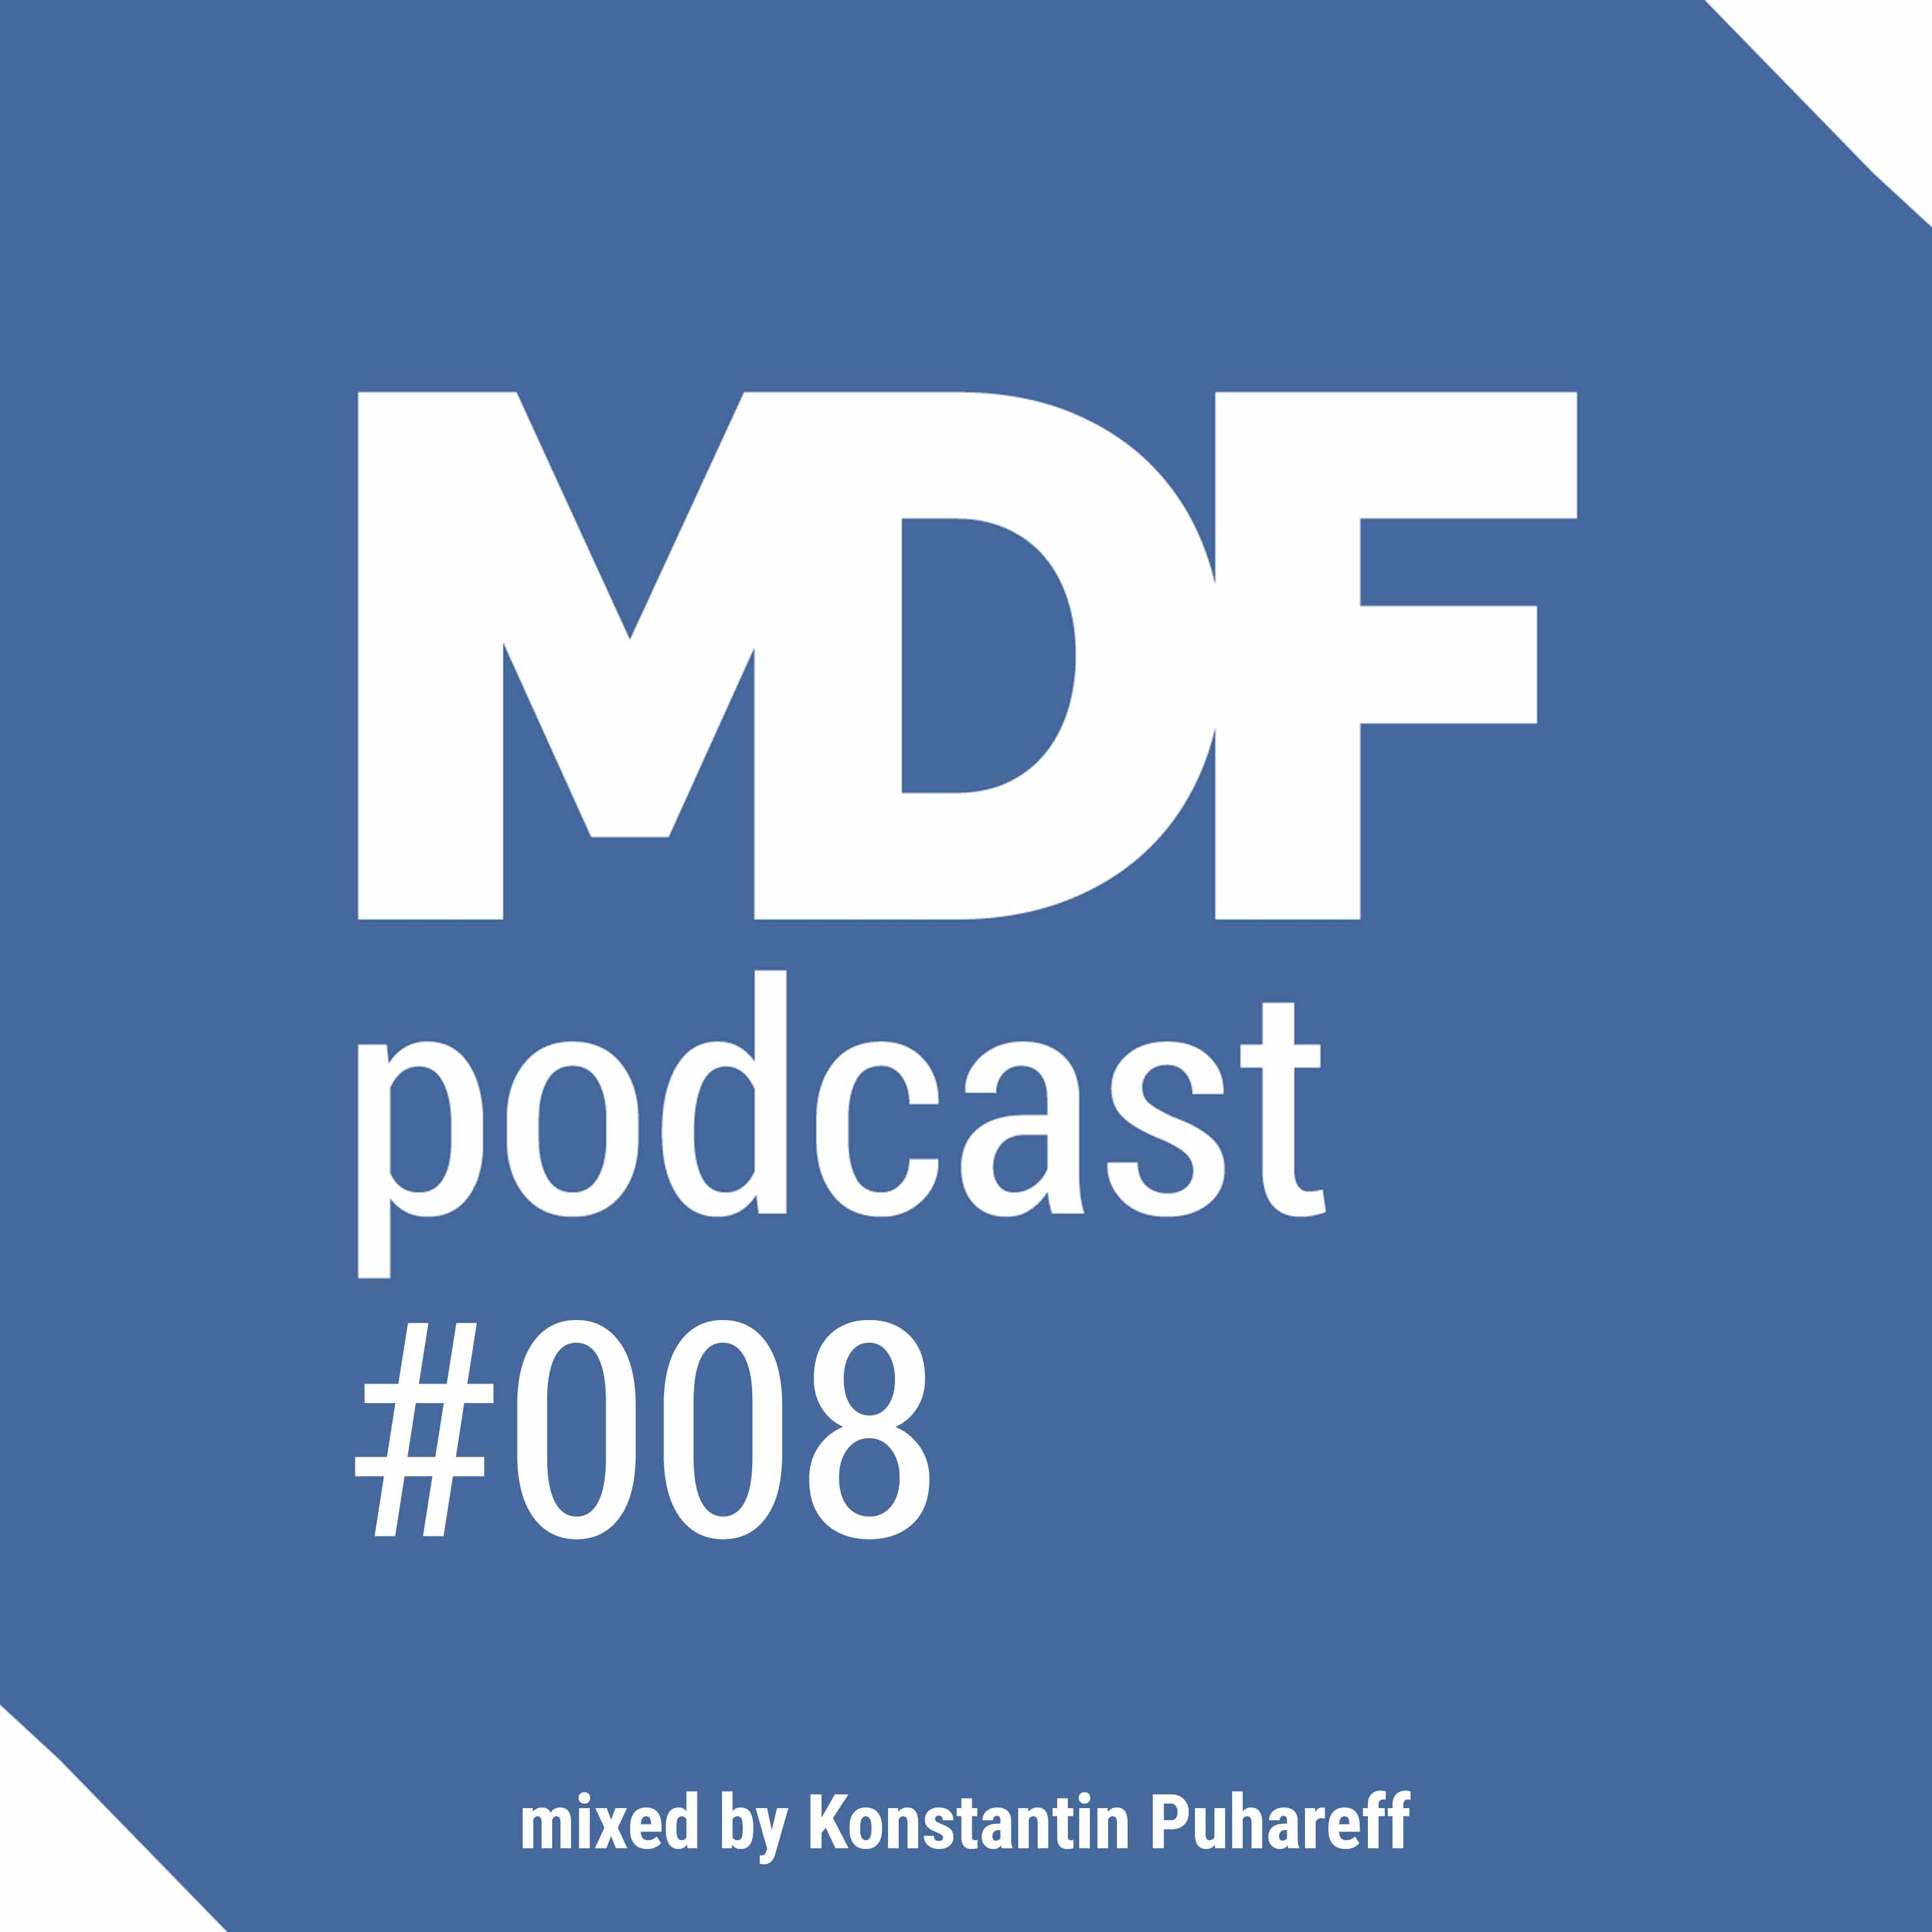 MDF Podcast oo8